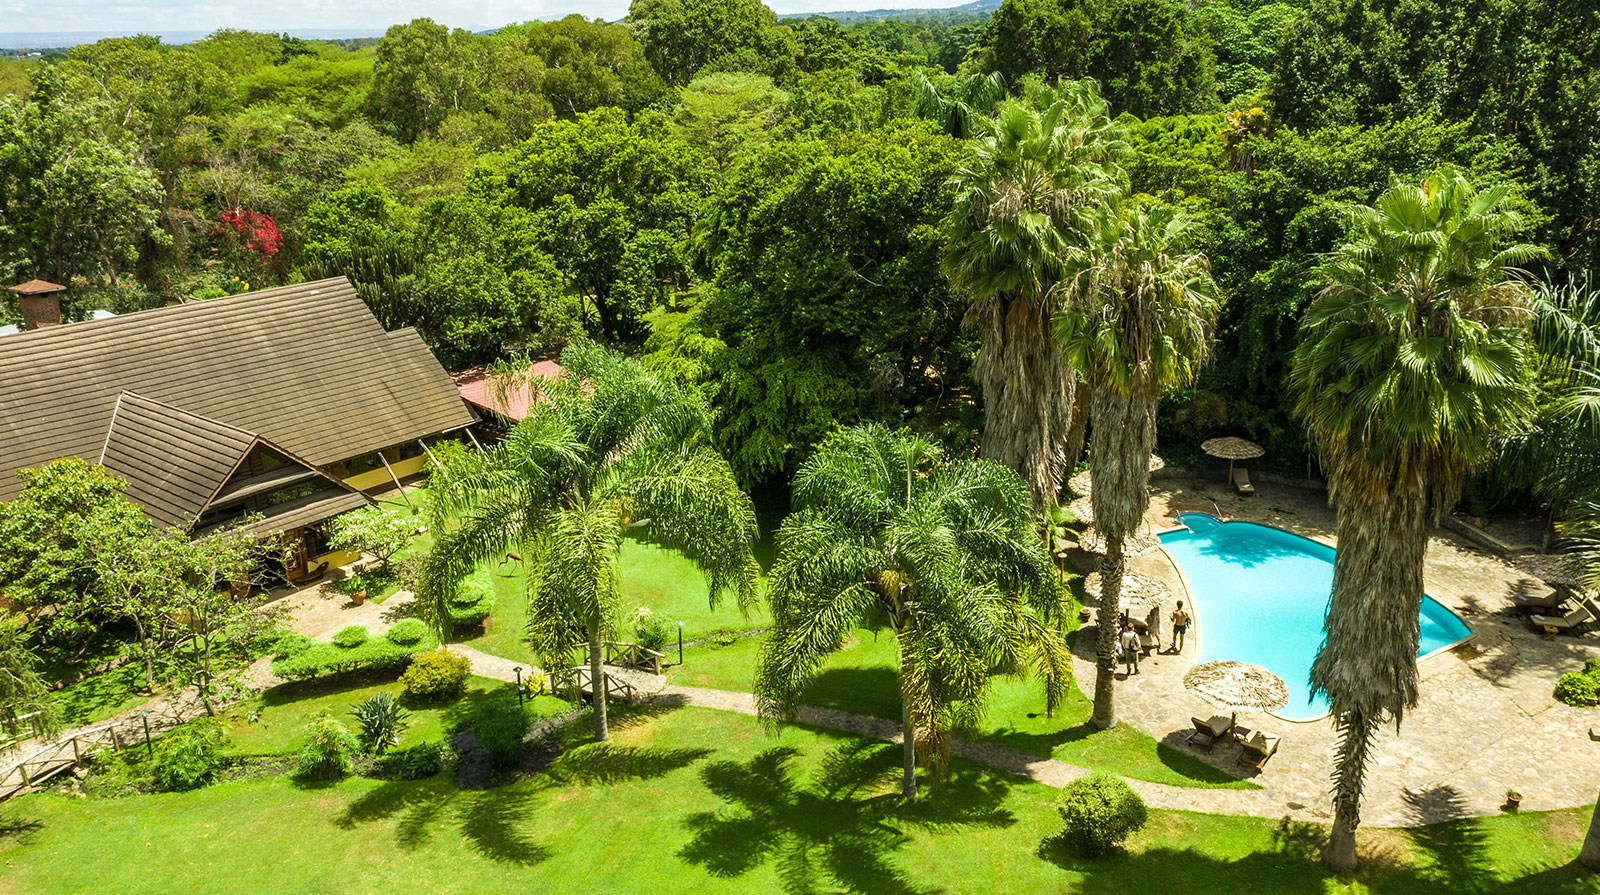 Arumeru Lodge - Green oasis near Arusha